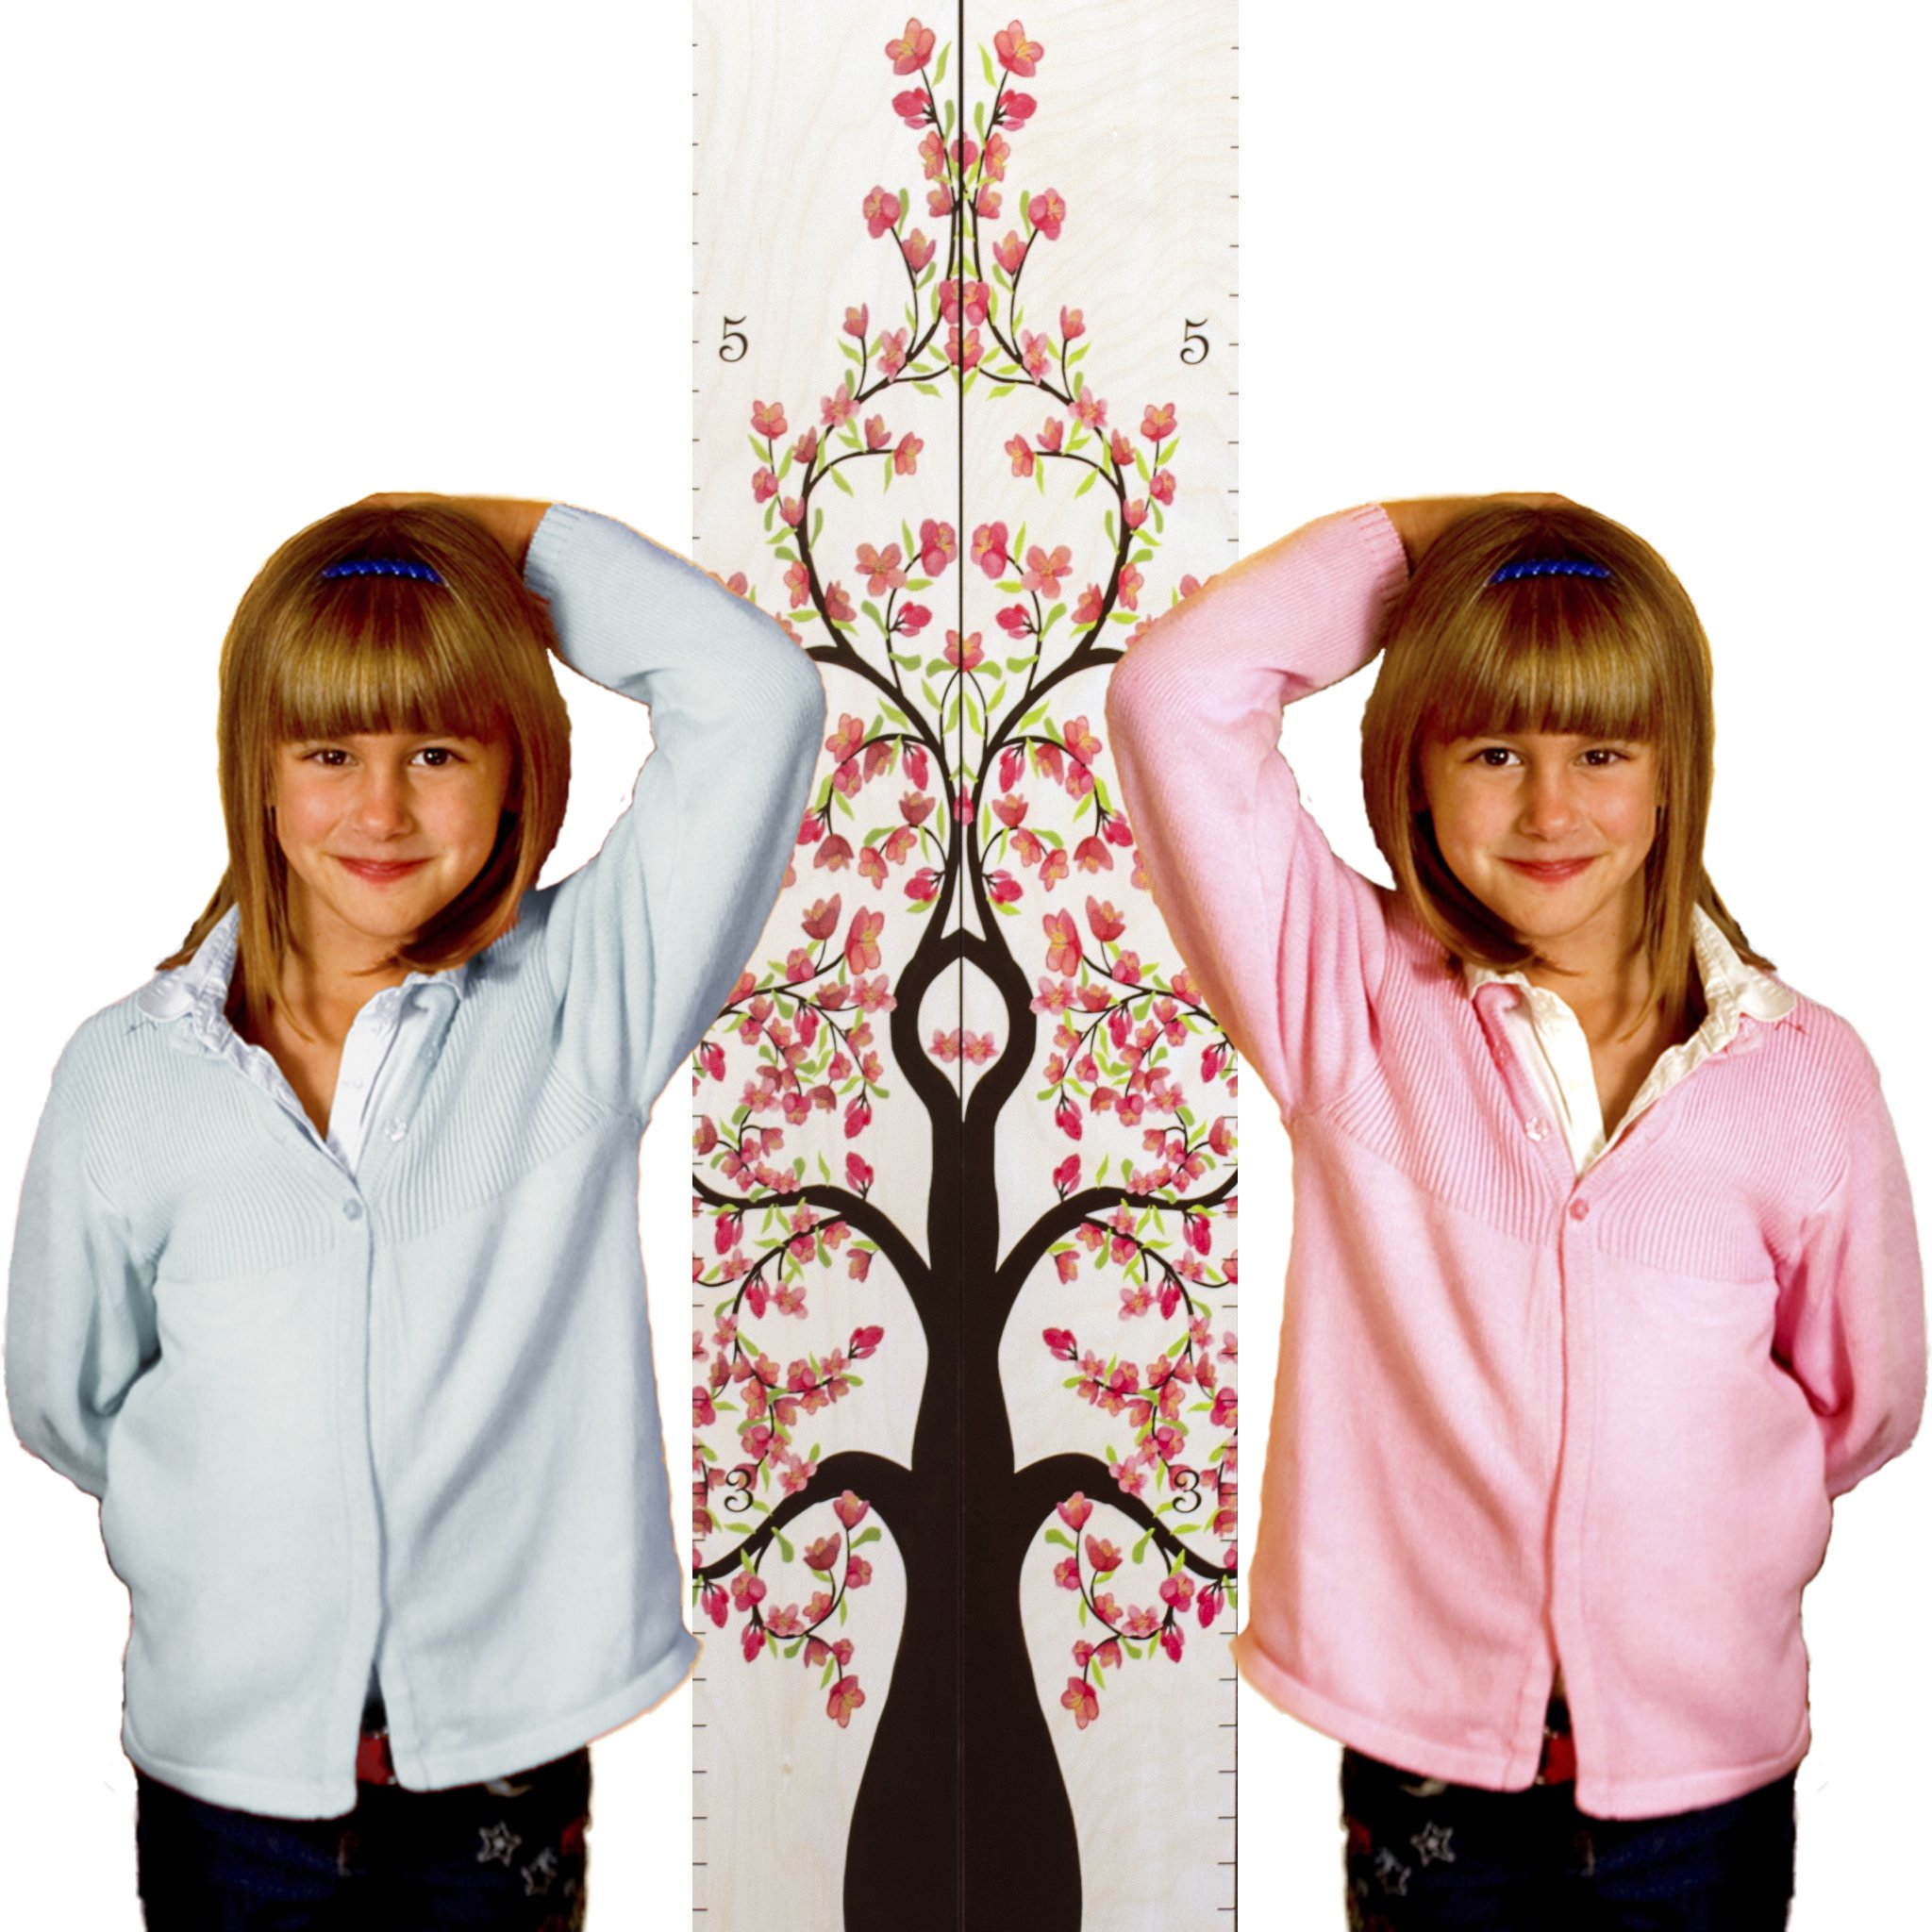 "Growth Chart Art | Hanging Wooden Height Growth Chart Pair to Measure Children, Grandchildren, Siblings, Twins - Pink Rose Flower Blossom Tree of Life Room Decoration for Girls - 58""x11.25"""